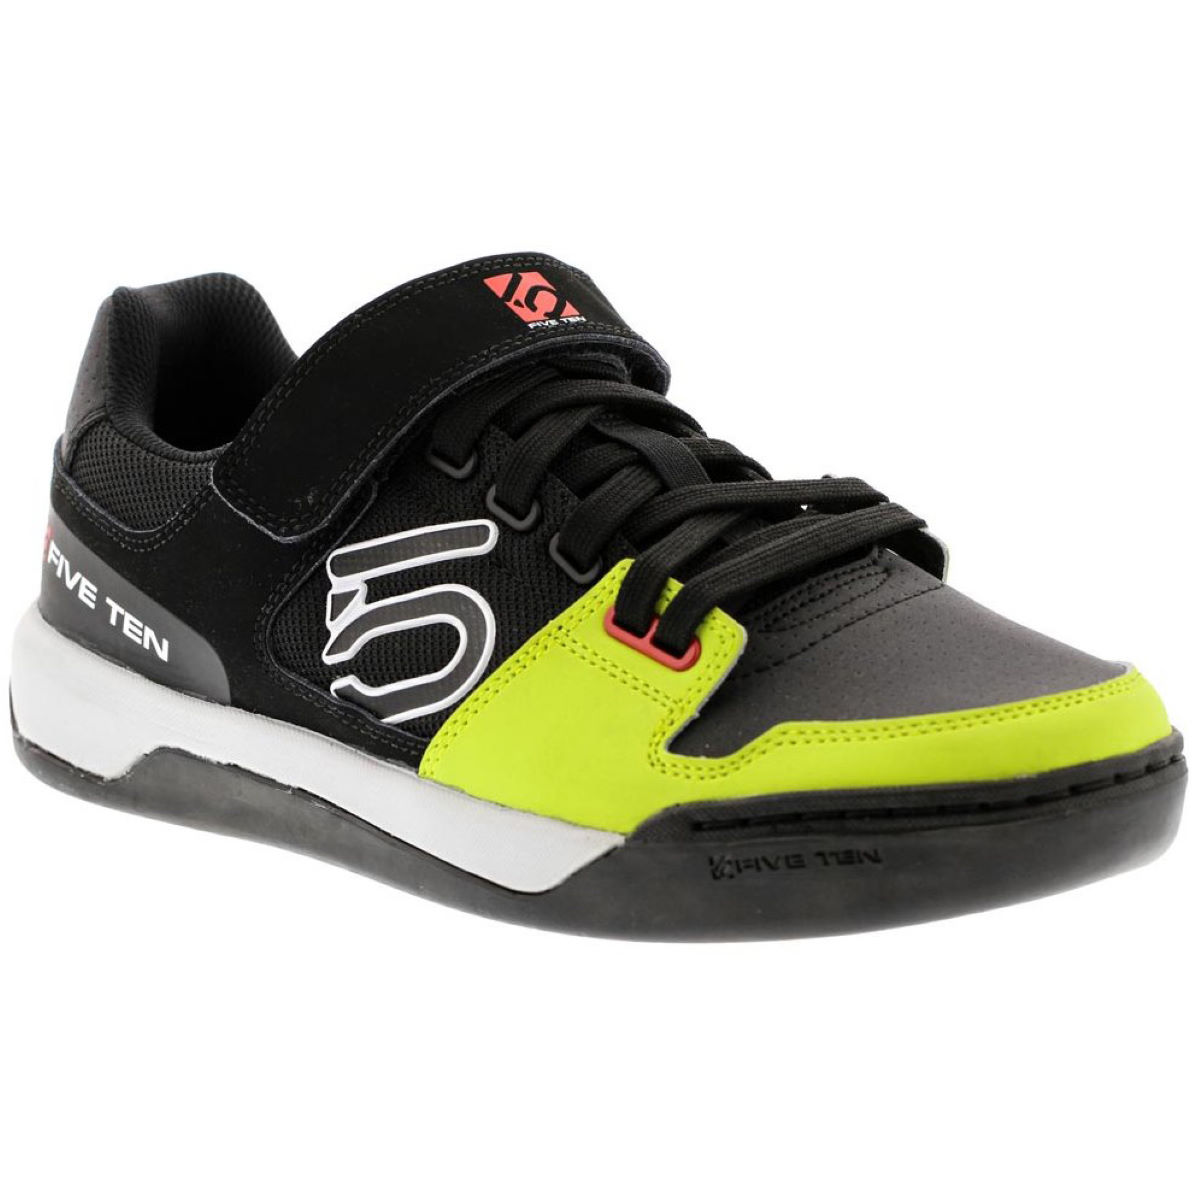 Zapatillas de MTB Five Ten Hellcat SPD - Zapatillas MTB